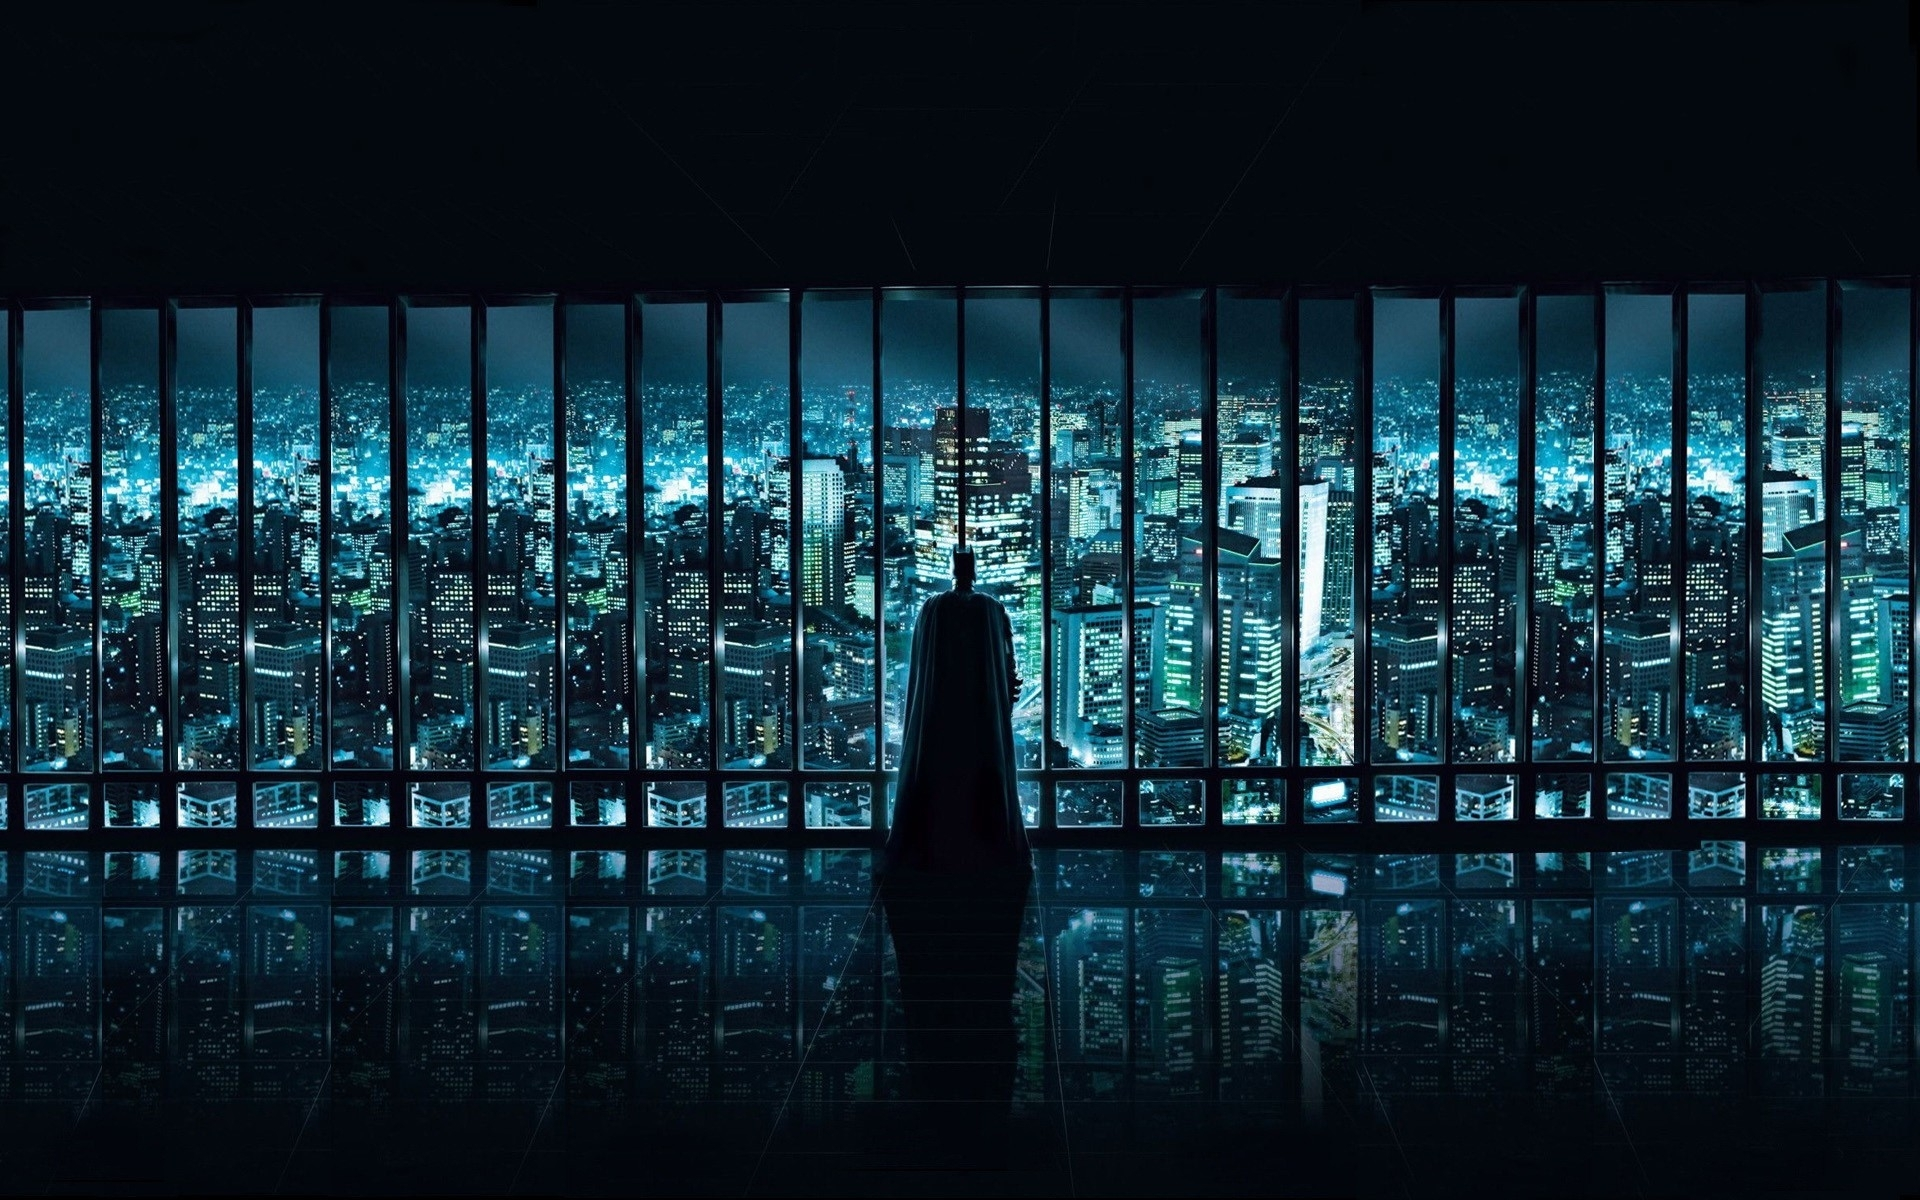 batman computer wallpaper group with 65 items